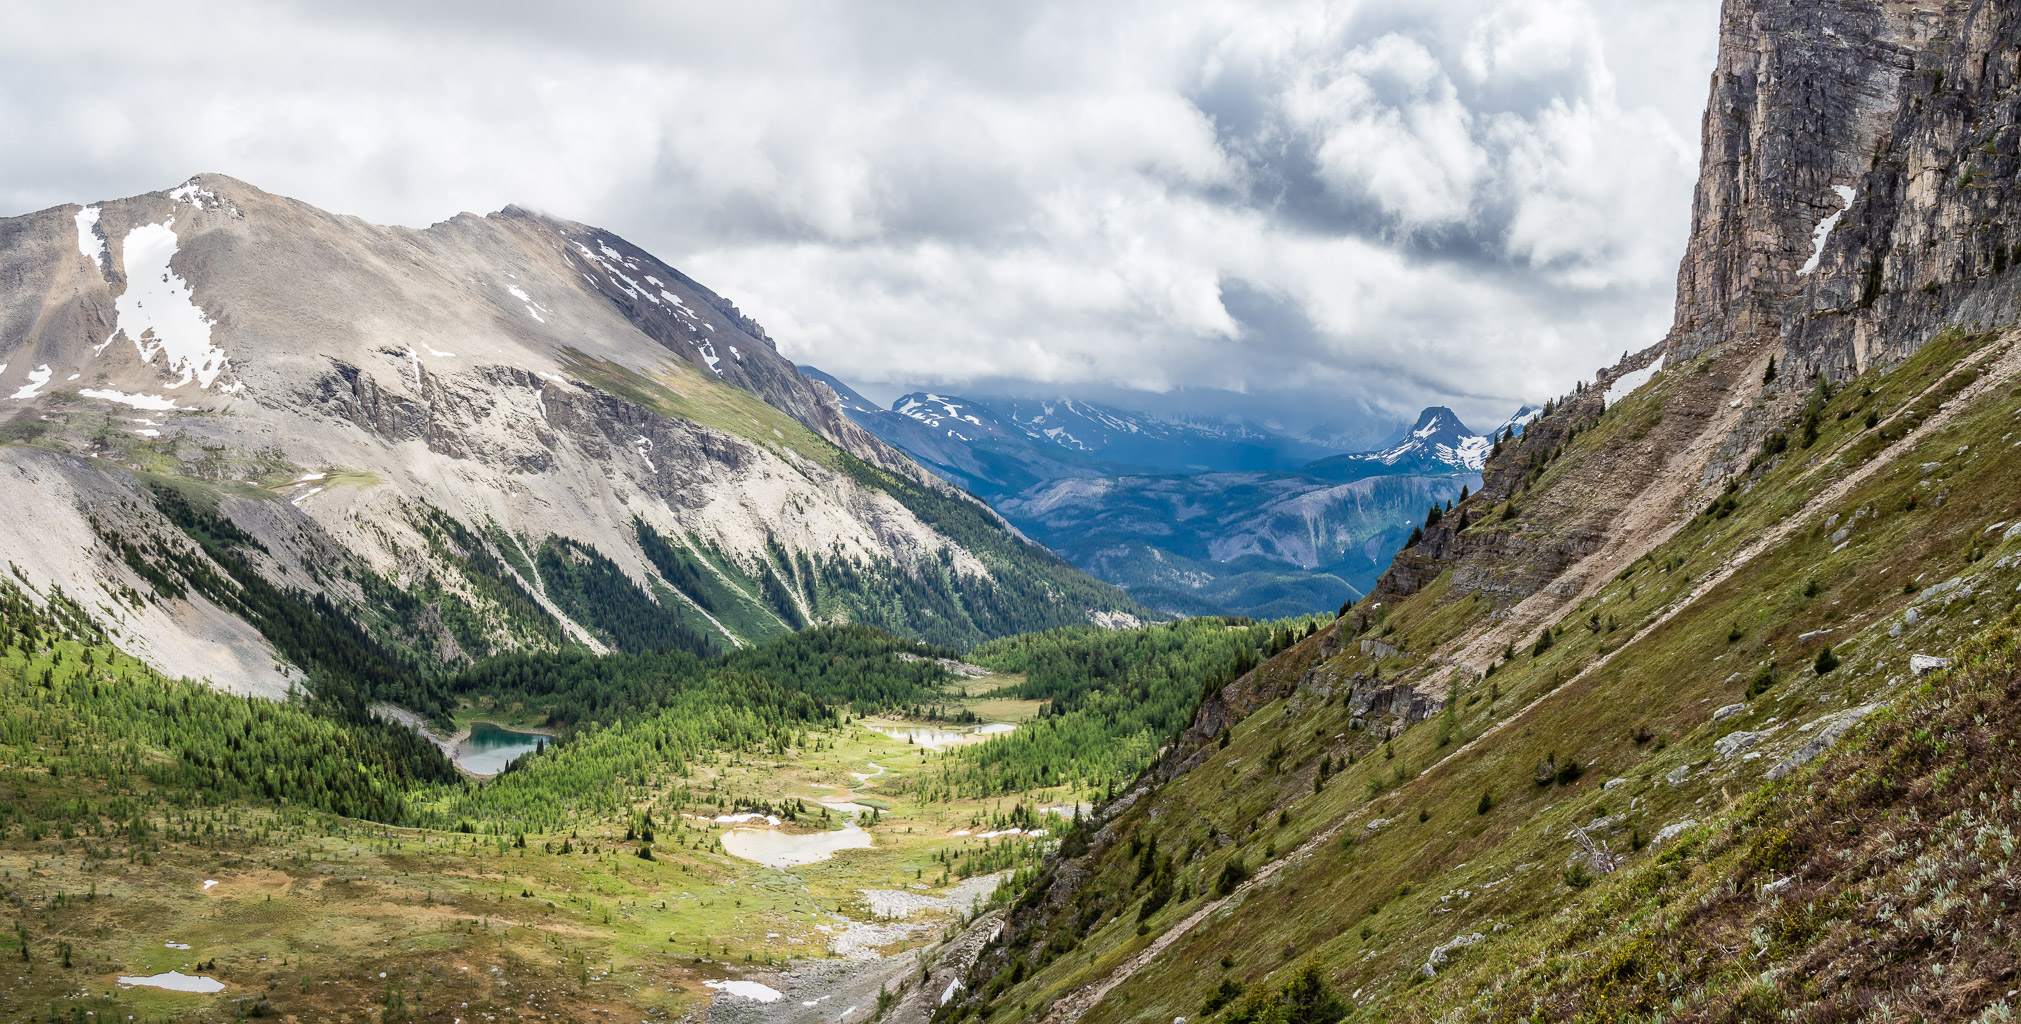 Looking past the eastern cliffs of Citadel towards Golden Mountain (L) and an outlier of Nub Peak at distant right.